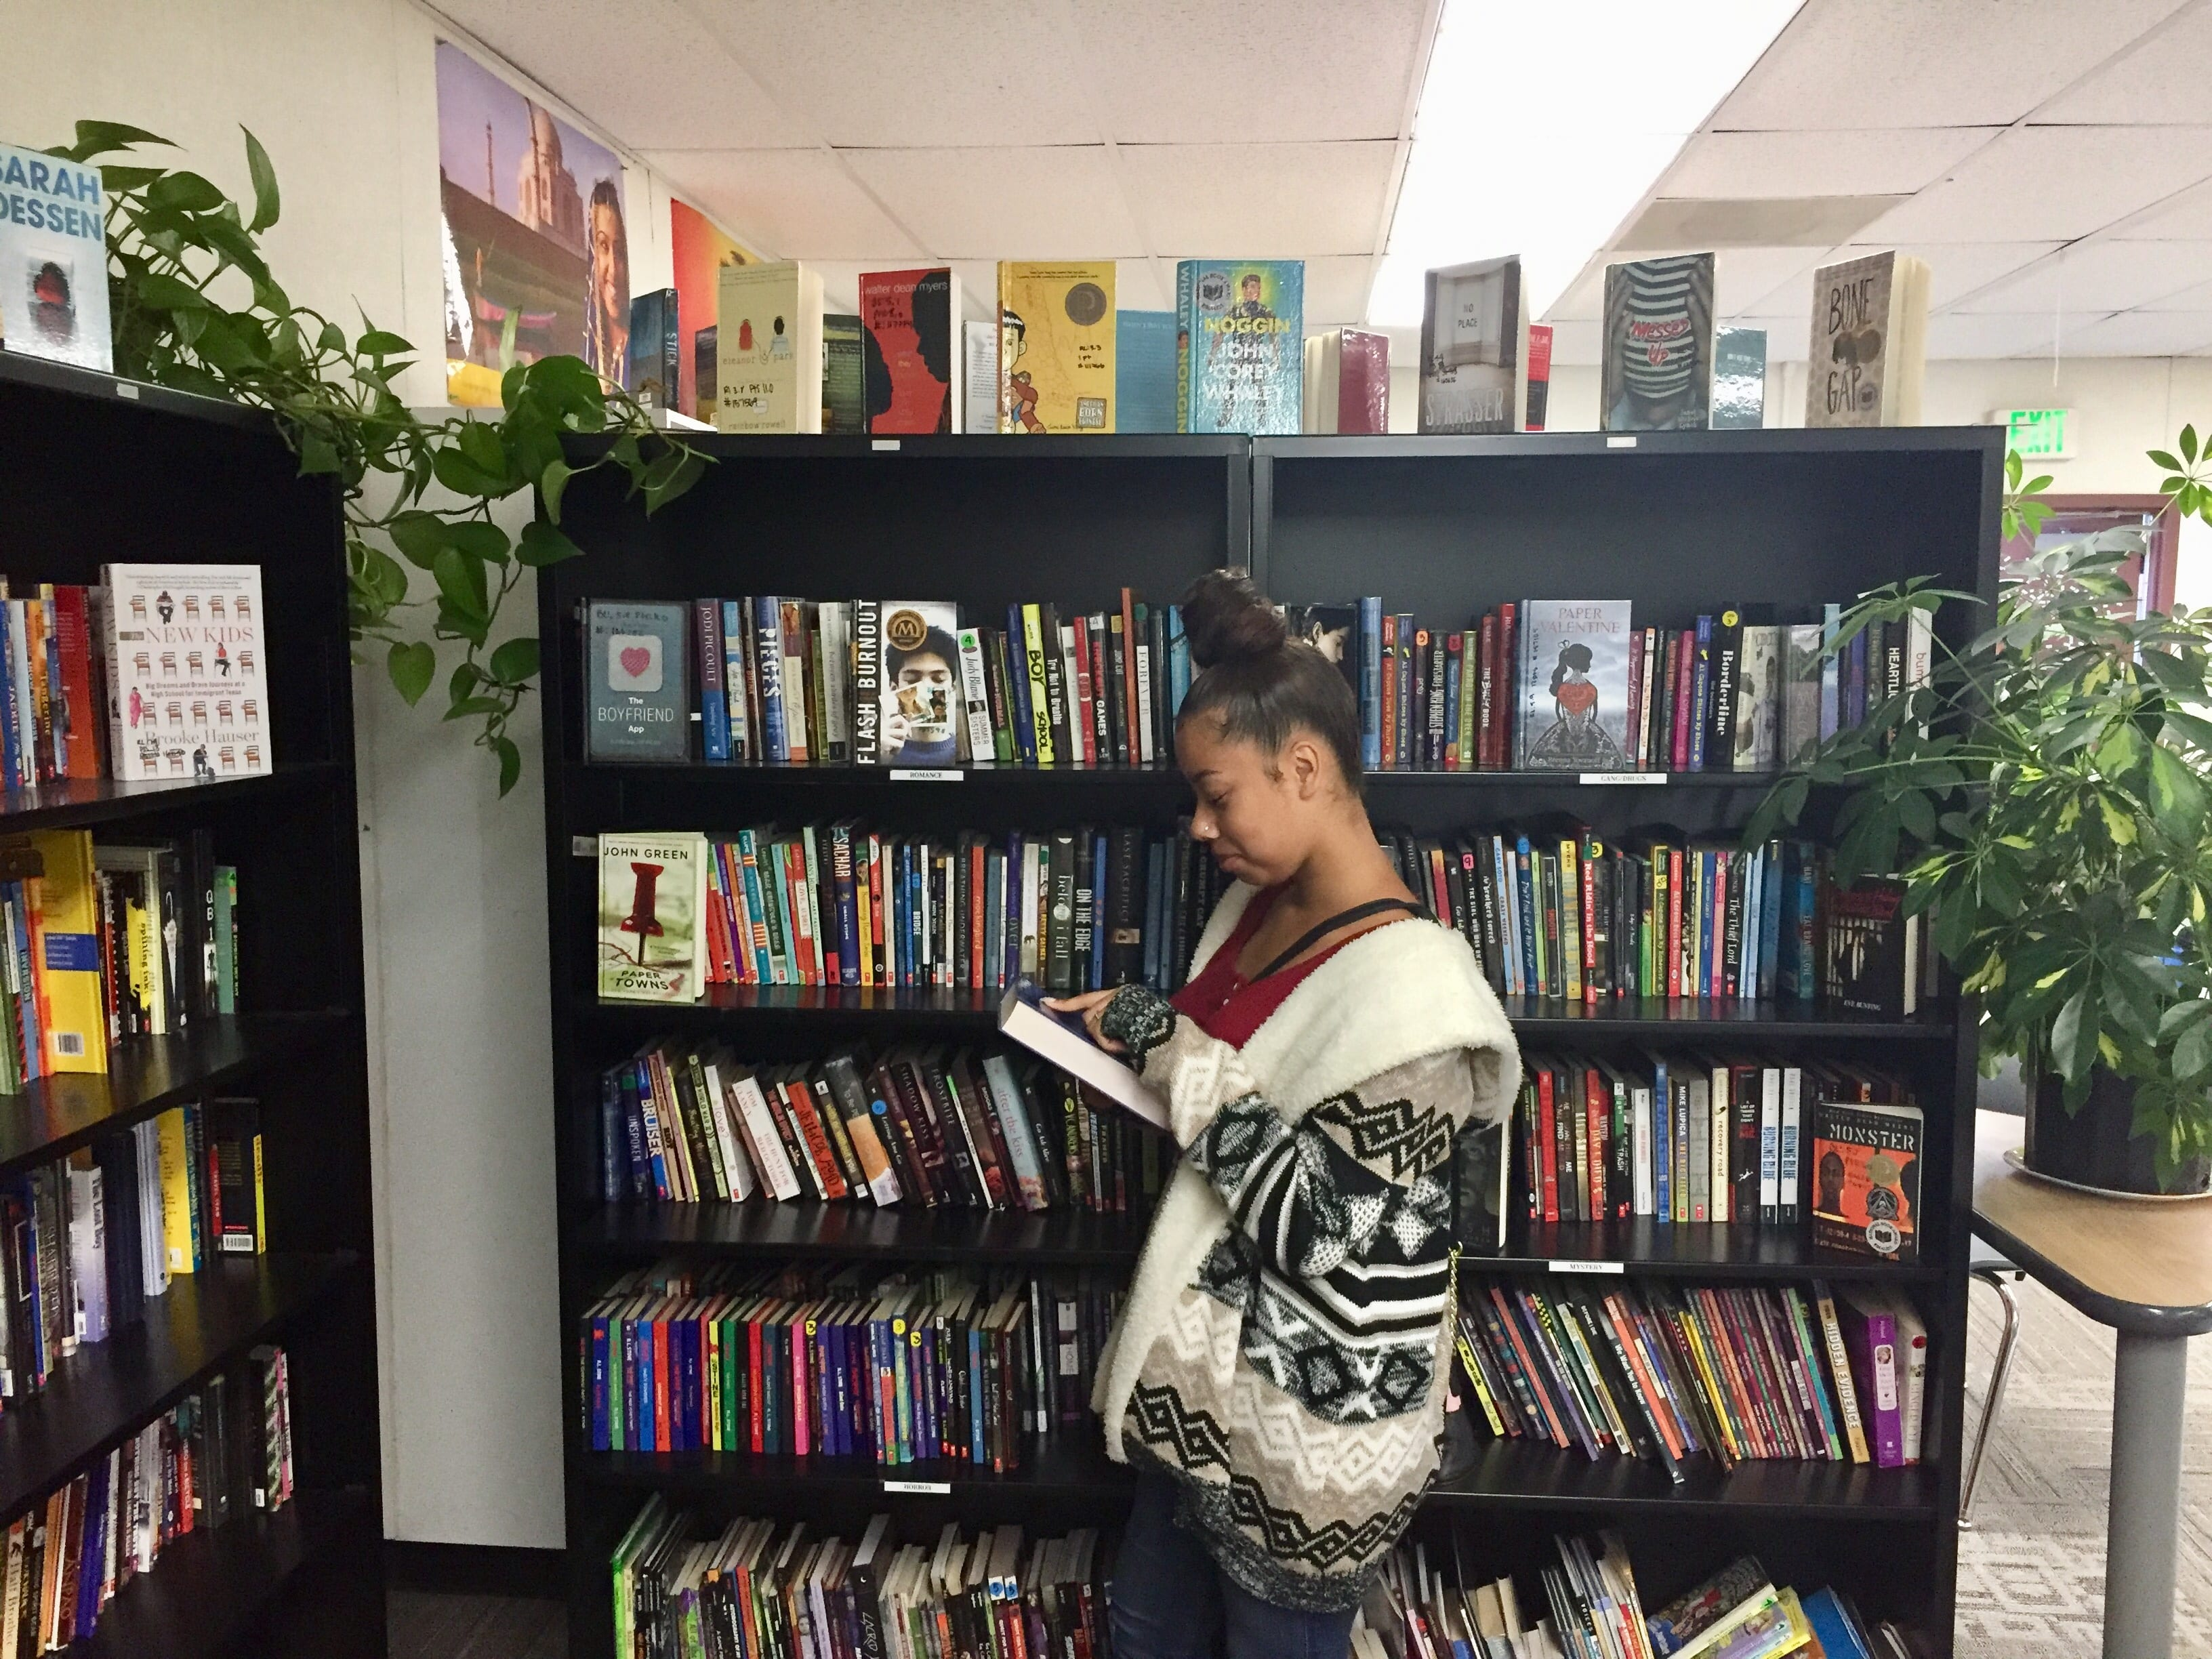 Student standing in front of bookshelves reading a book - help struggling readers